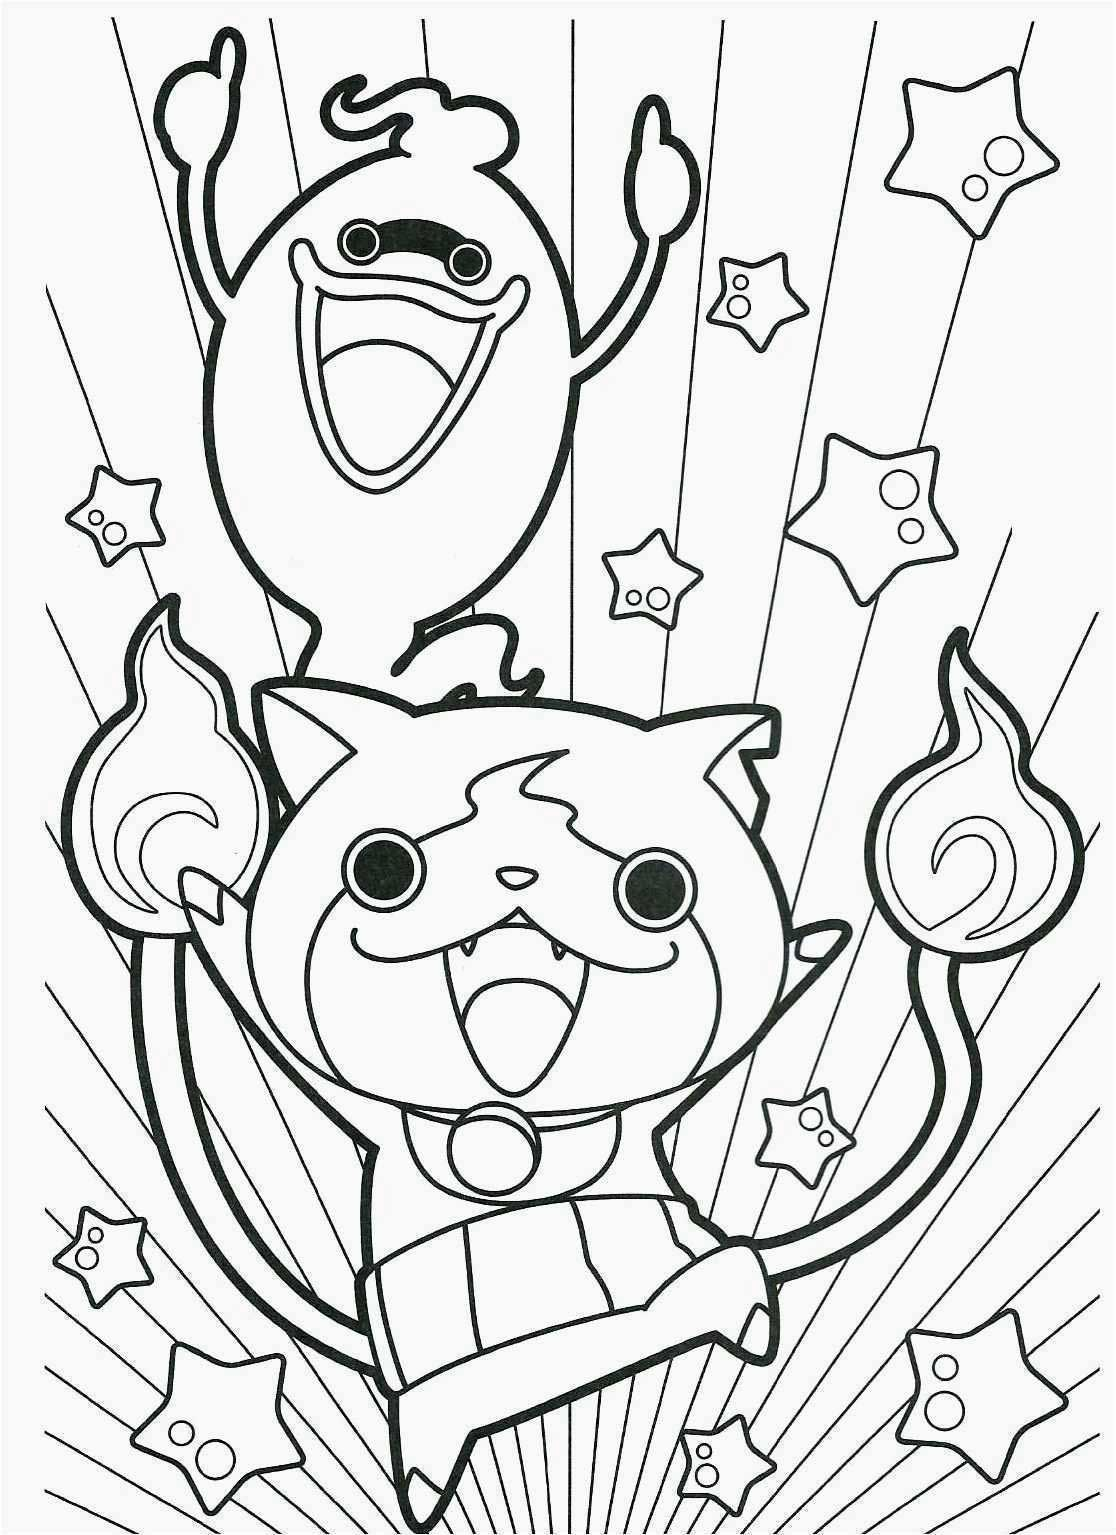 Mignonne Coloriage Carte Pokémon 83 sur Coloriage idée with Coloriage Carte Pokémon